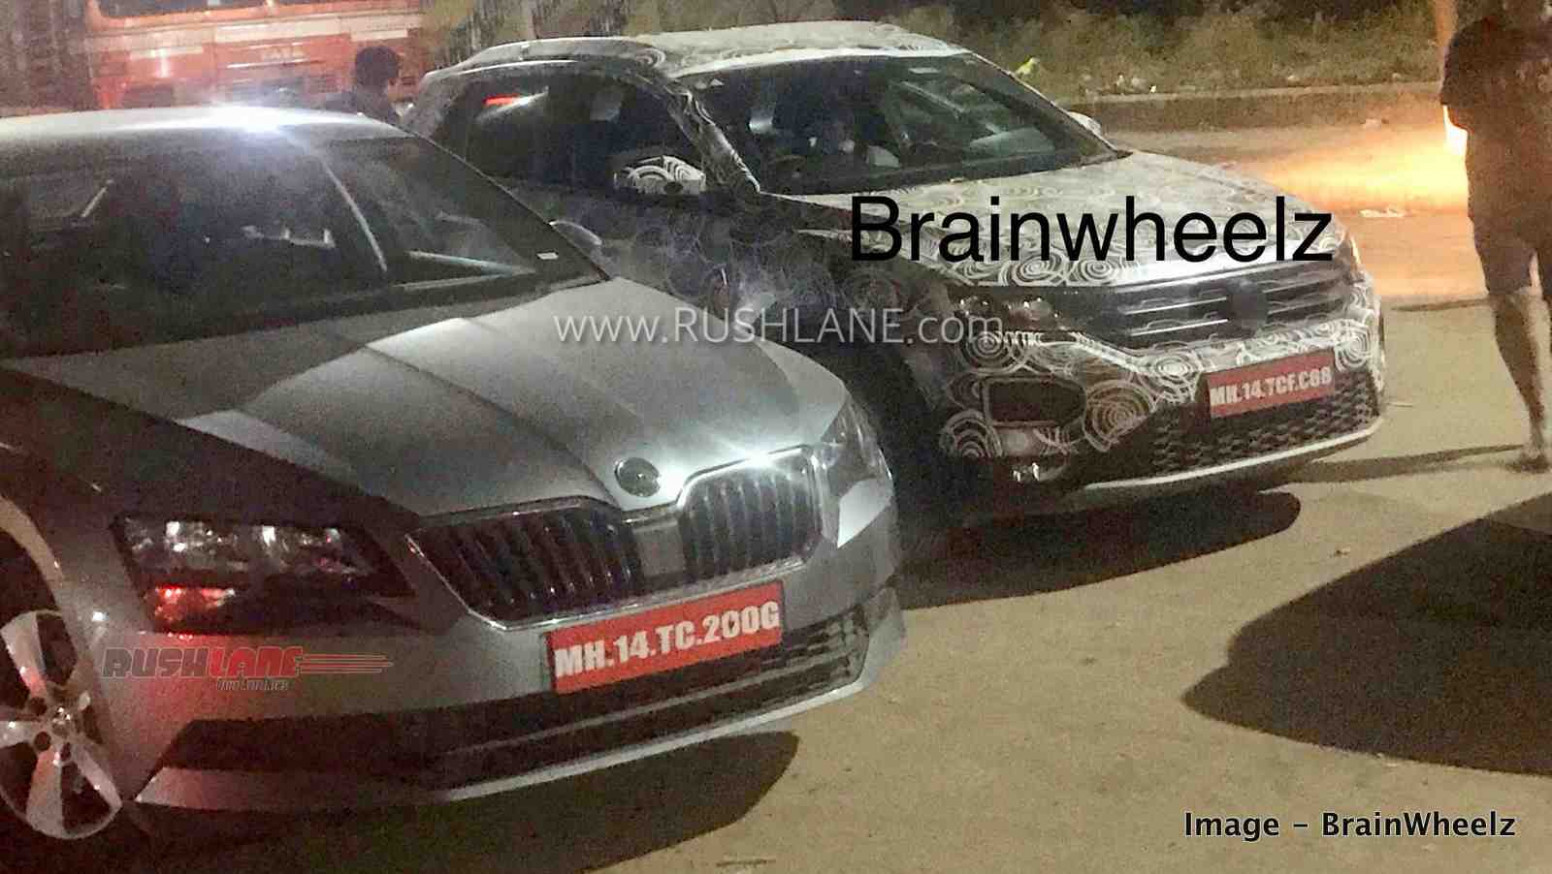 Volkswagen T Roc SUV spied in India along with 8 Skoda Superb